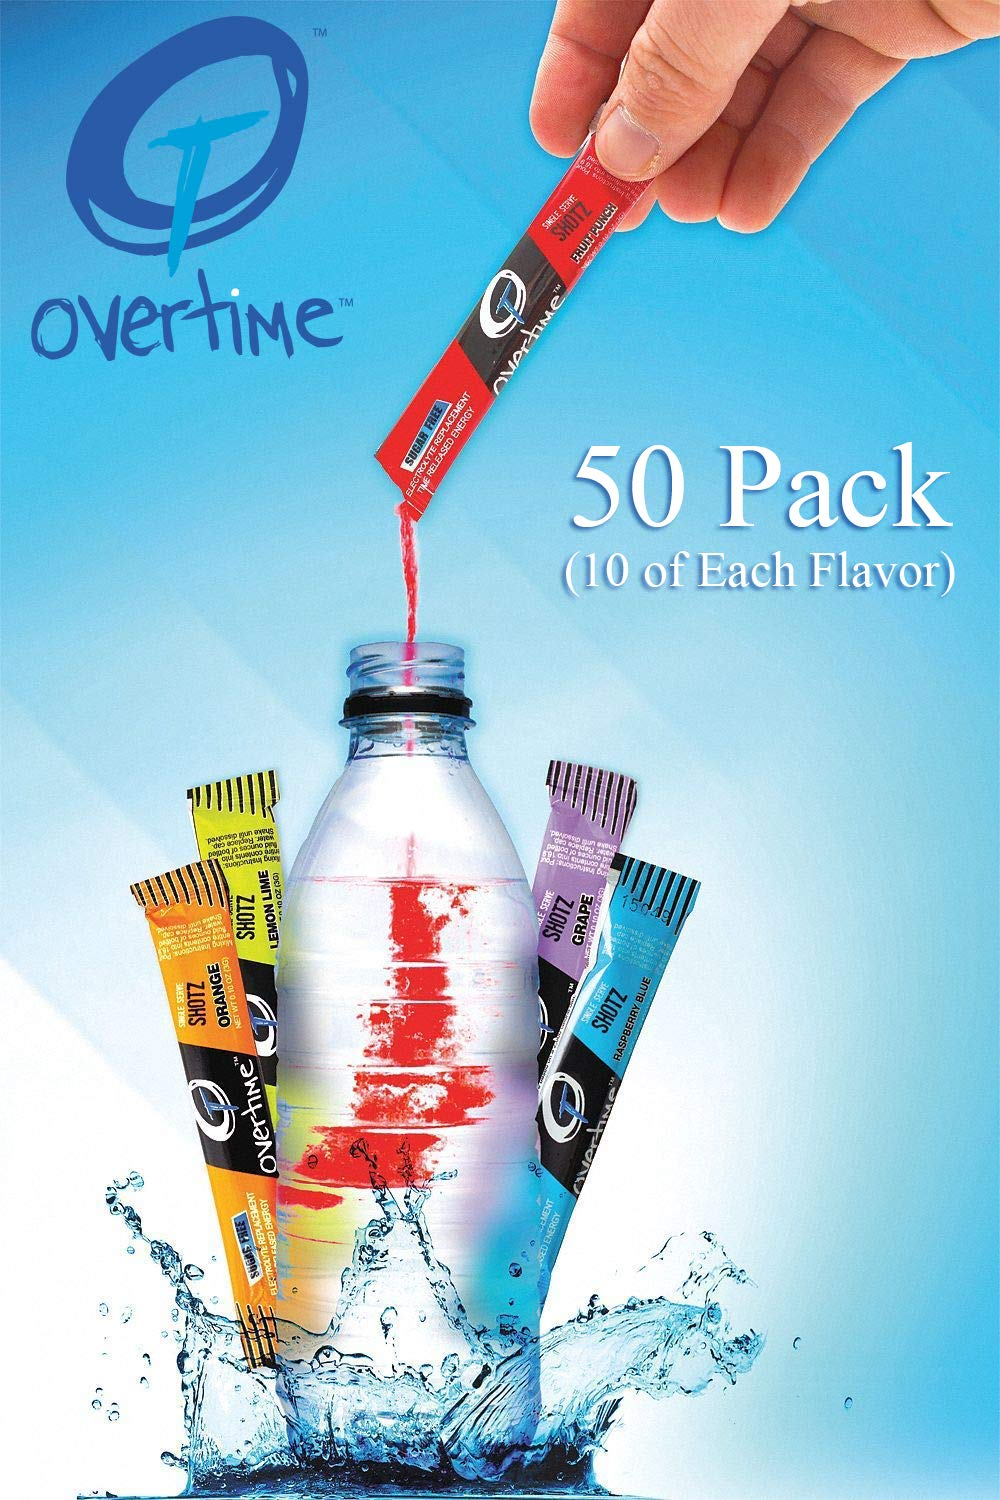 Overtime Electrolyte Replacement Drink Mix - Single Serve Variety Pack - Quantity of 50 (10 of Each Flavor)